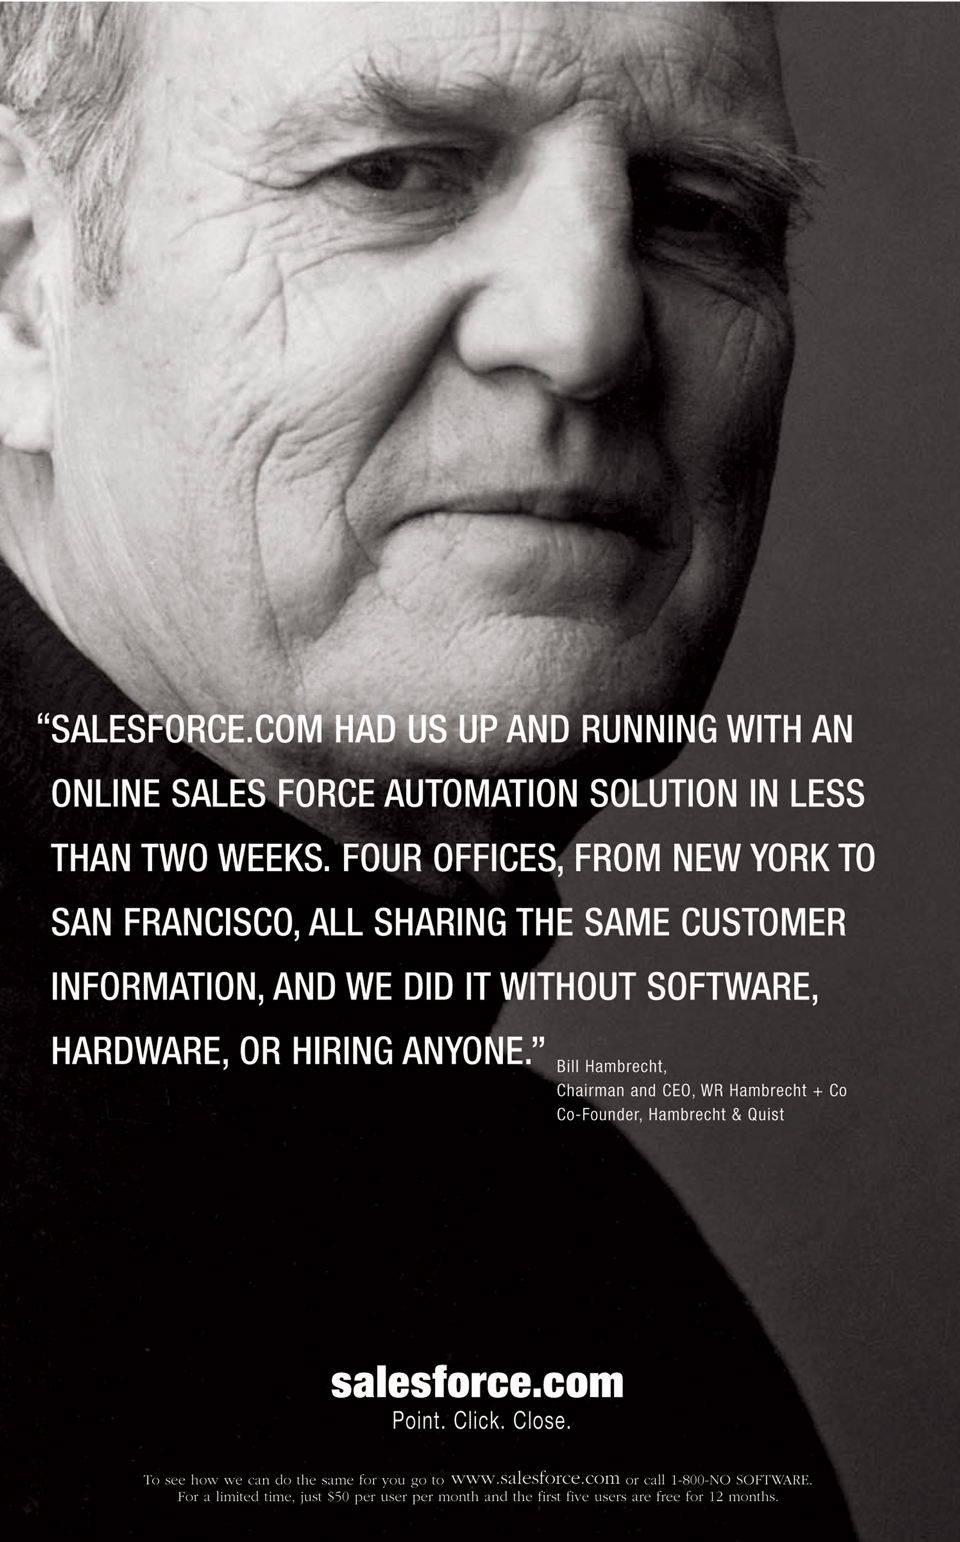 salesforce_hambrecht